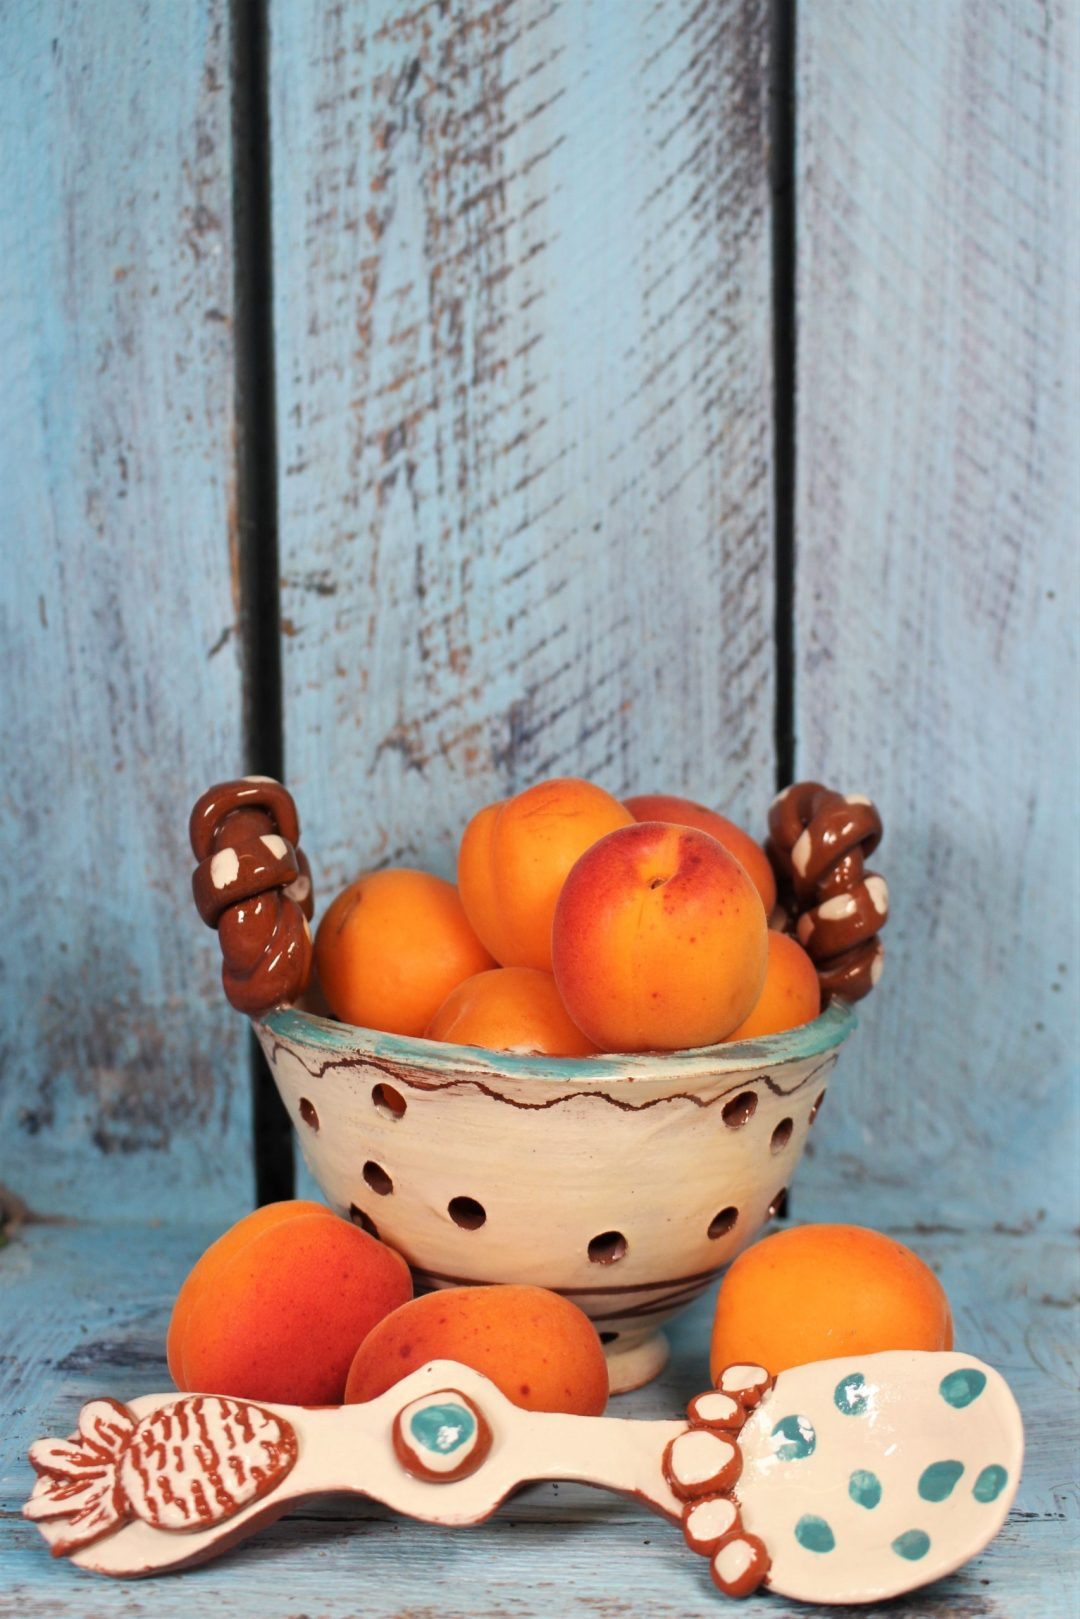 hand thrown slipware colander bowl with fresh peaches plus a slipware pottery spoon oin blue and white